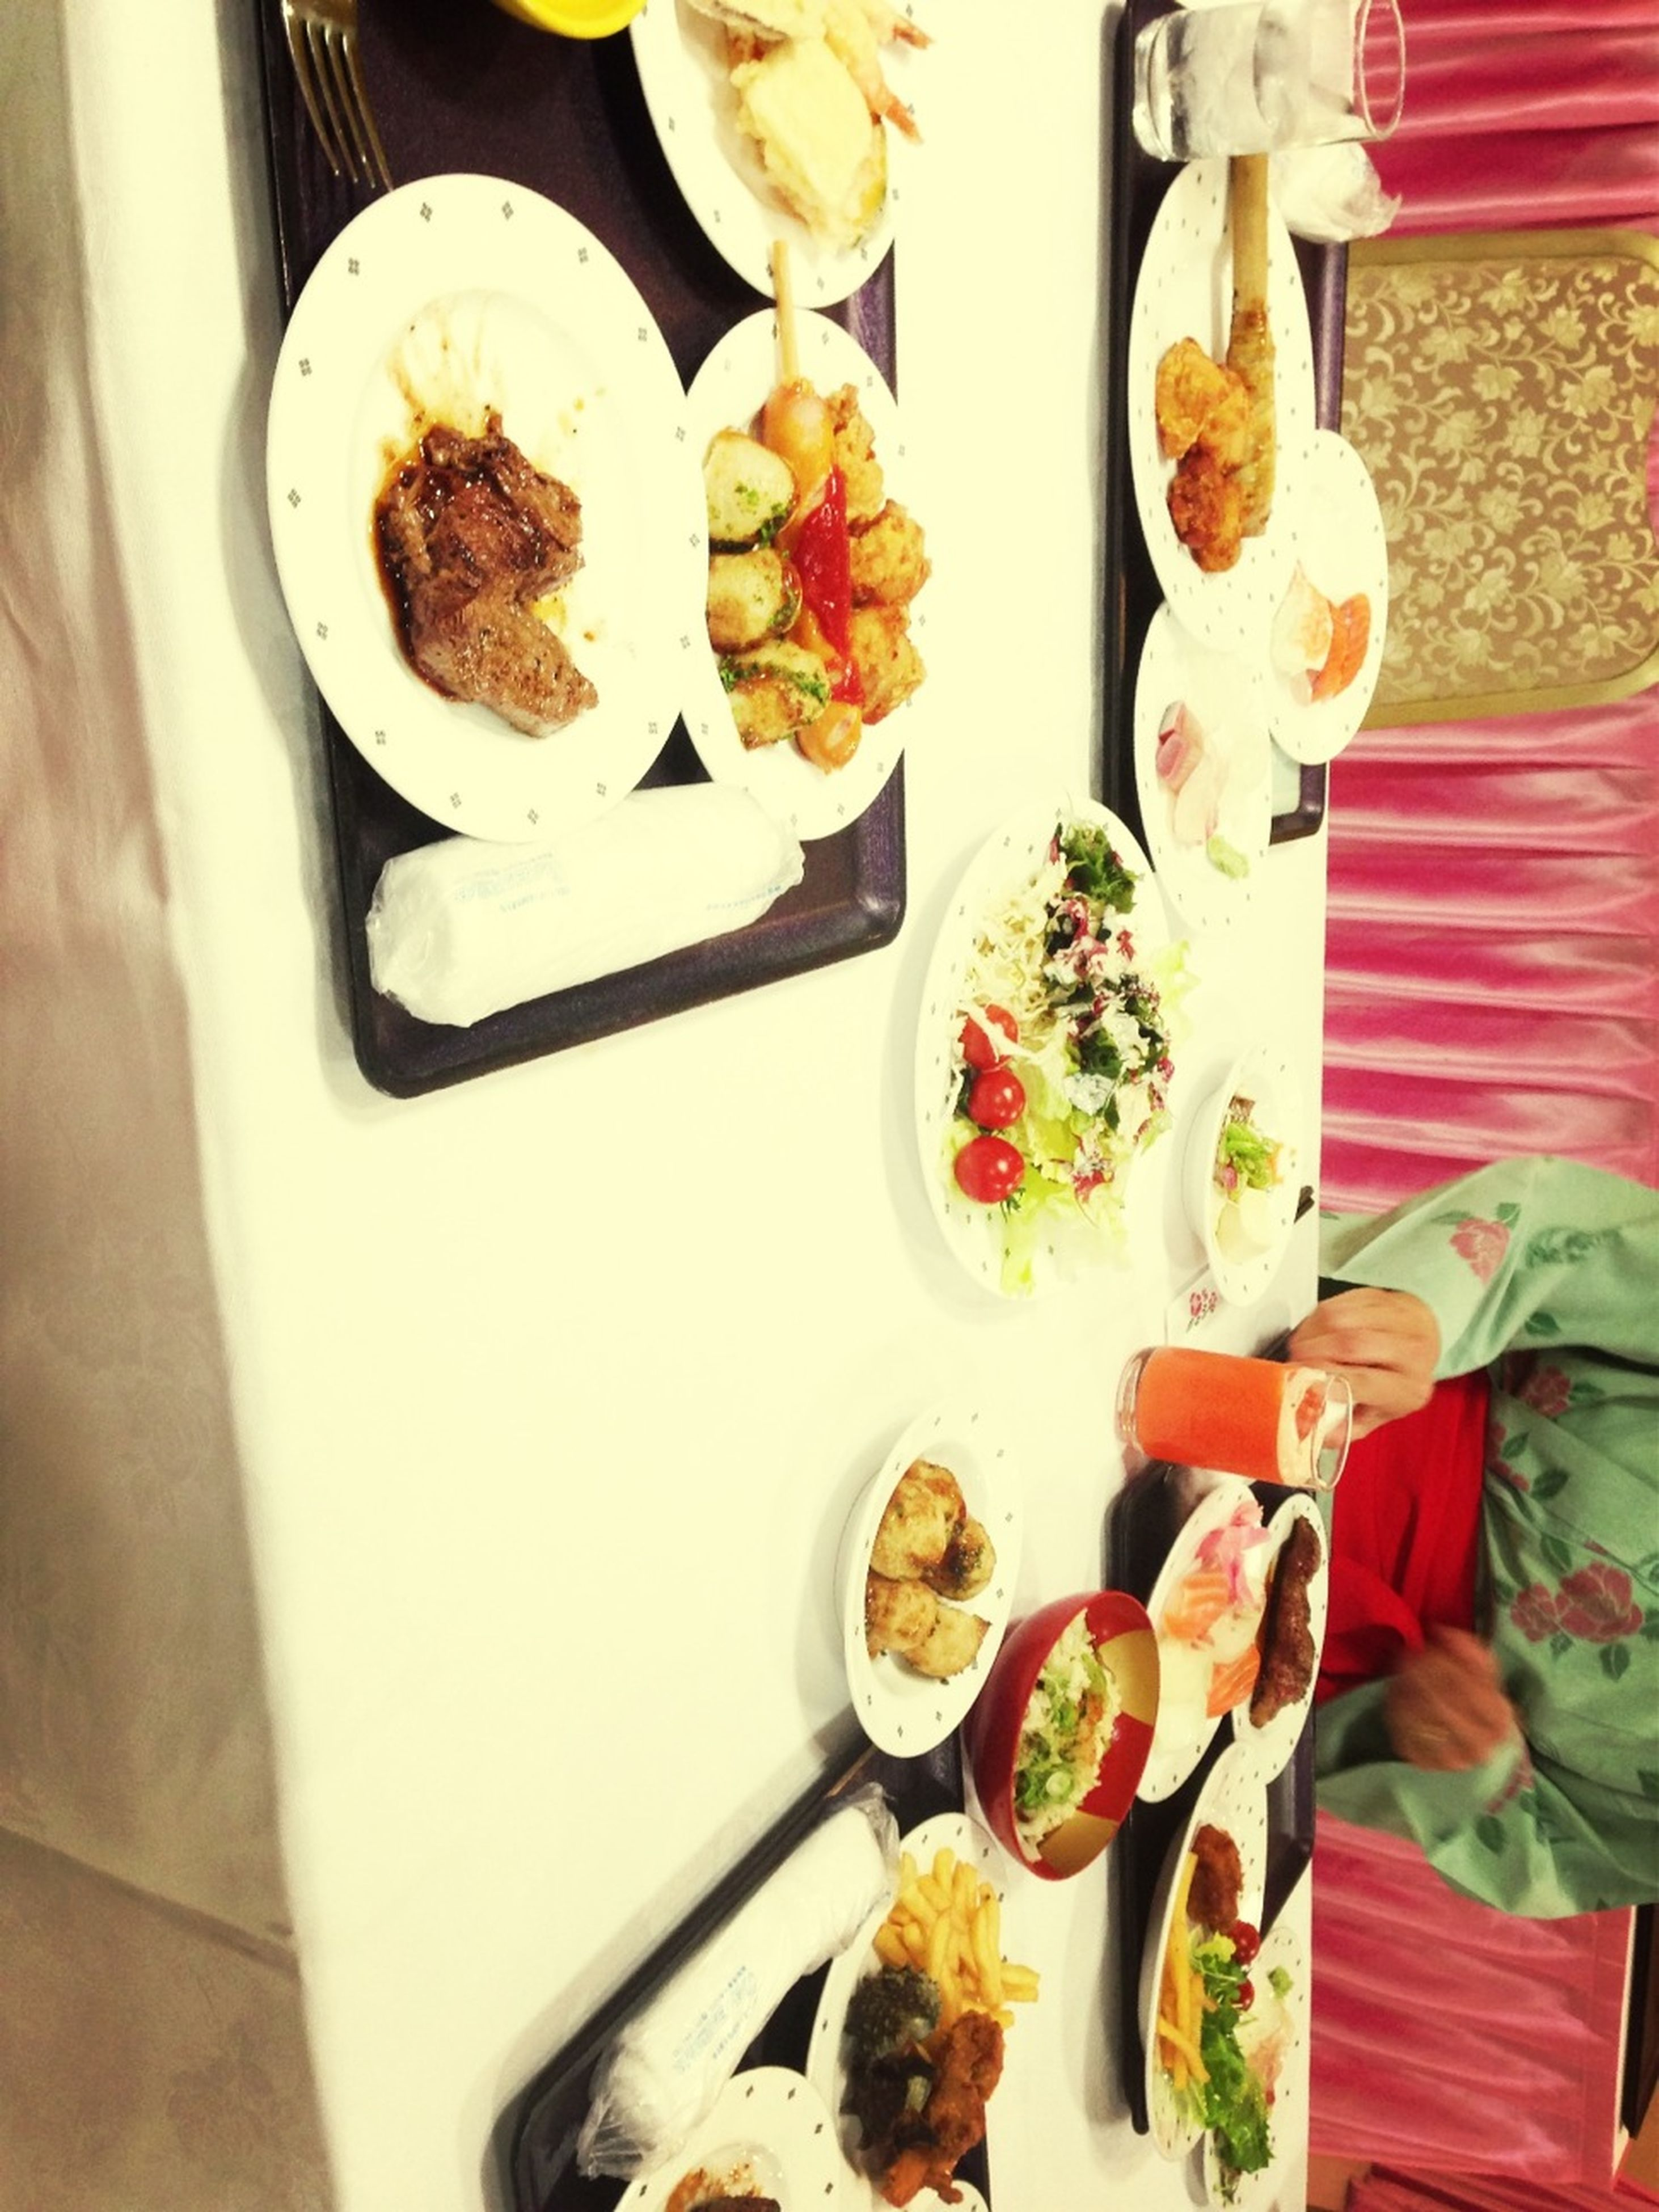 indoors, food and drink, food, freshness, still life, table, variation, high angle view, plate, choice, ready-to-eat, healthy eating, arrangement, indulgence, meal, sweet food, bowl, no people, tray, large group of objects